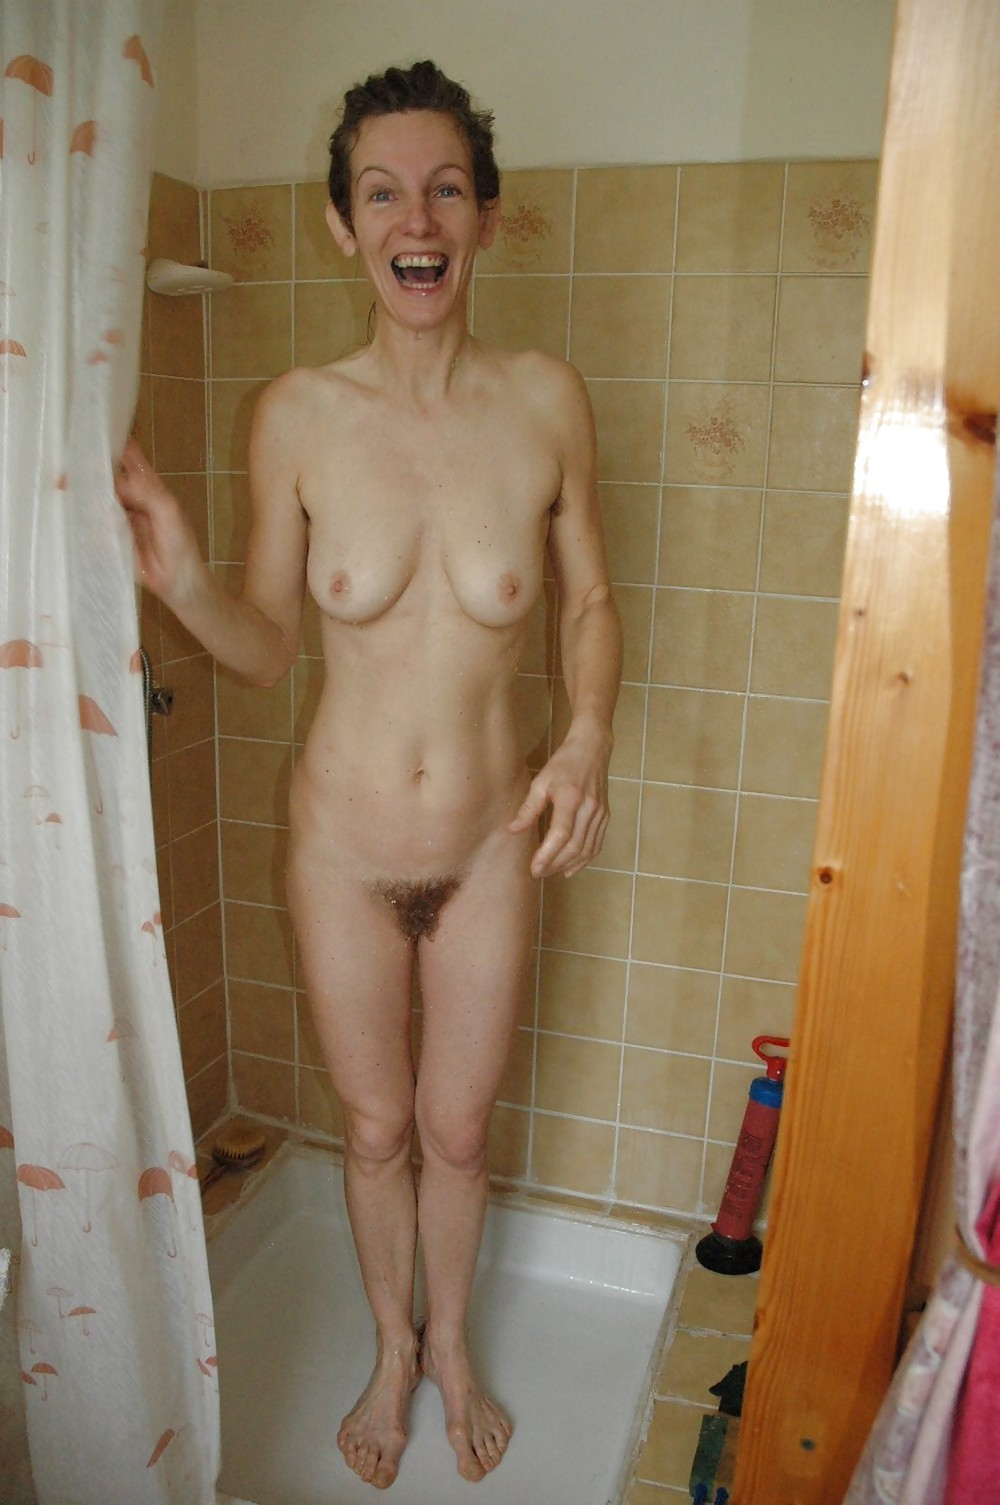 Sexy naked wife imageed in the bathtub